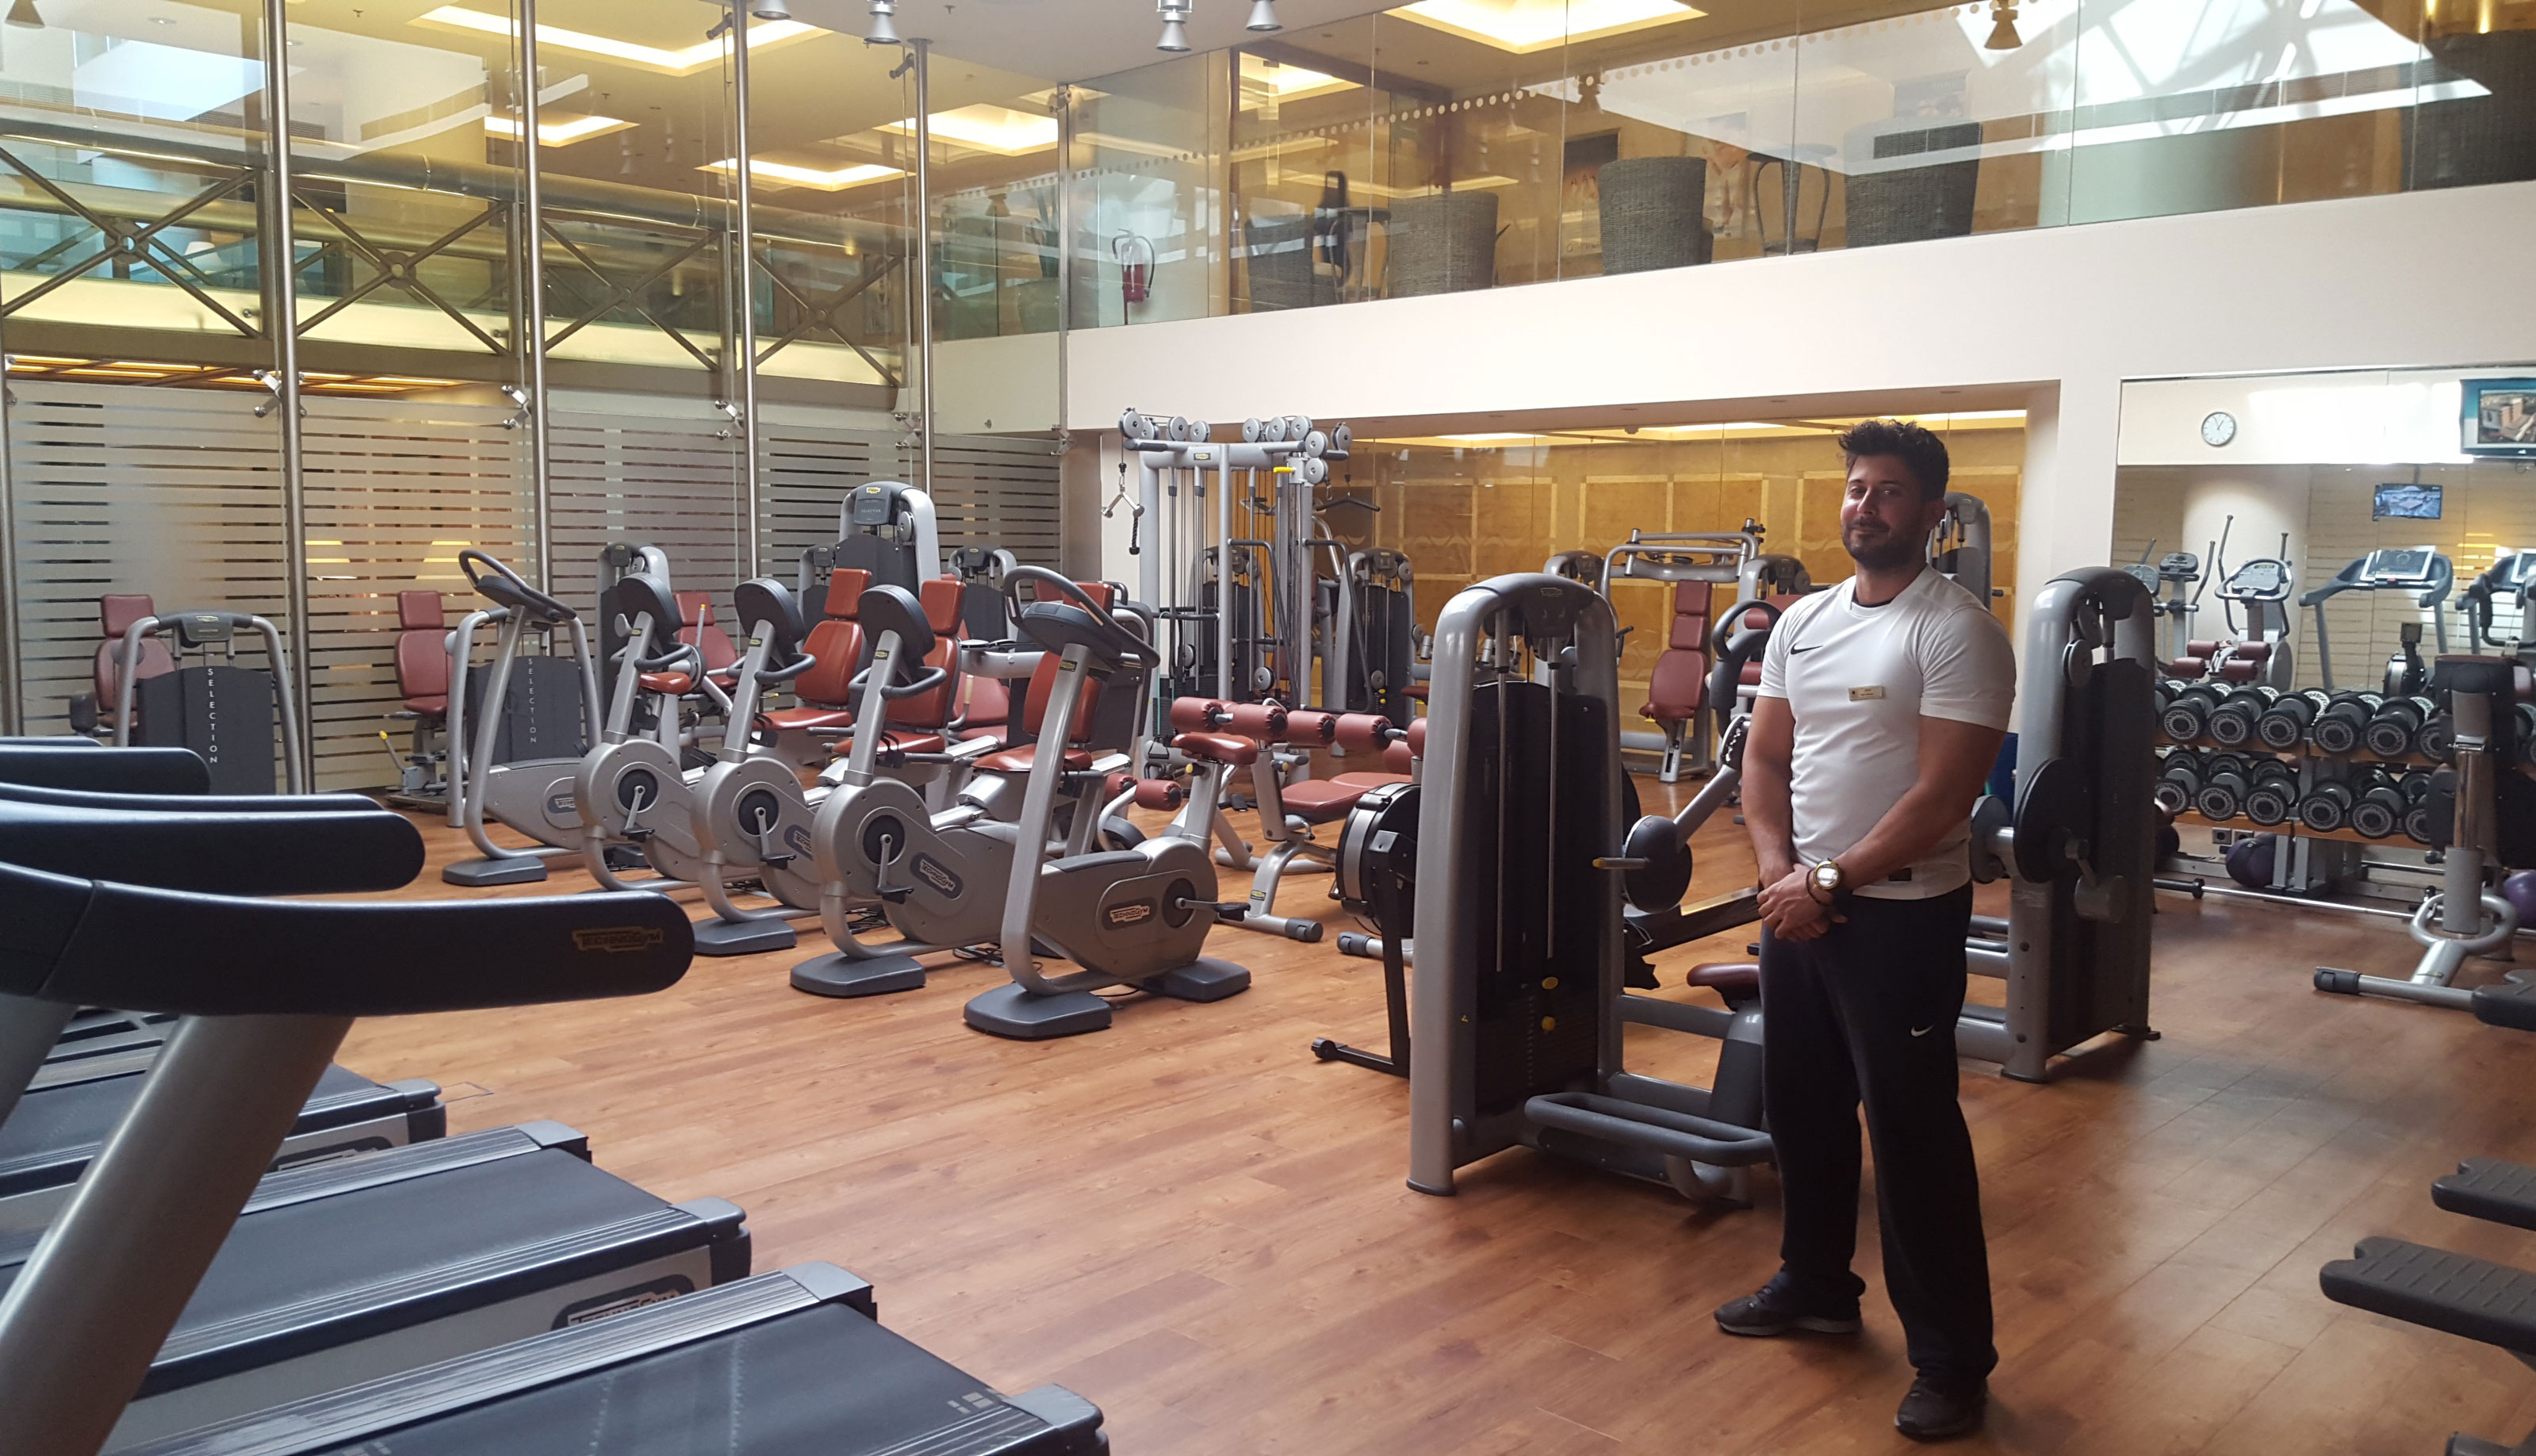 Divani Palace Acropolis Gym Jessicas Review Of Divani Apollon Palace And Thalasso